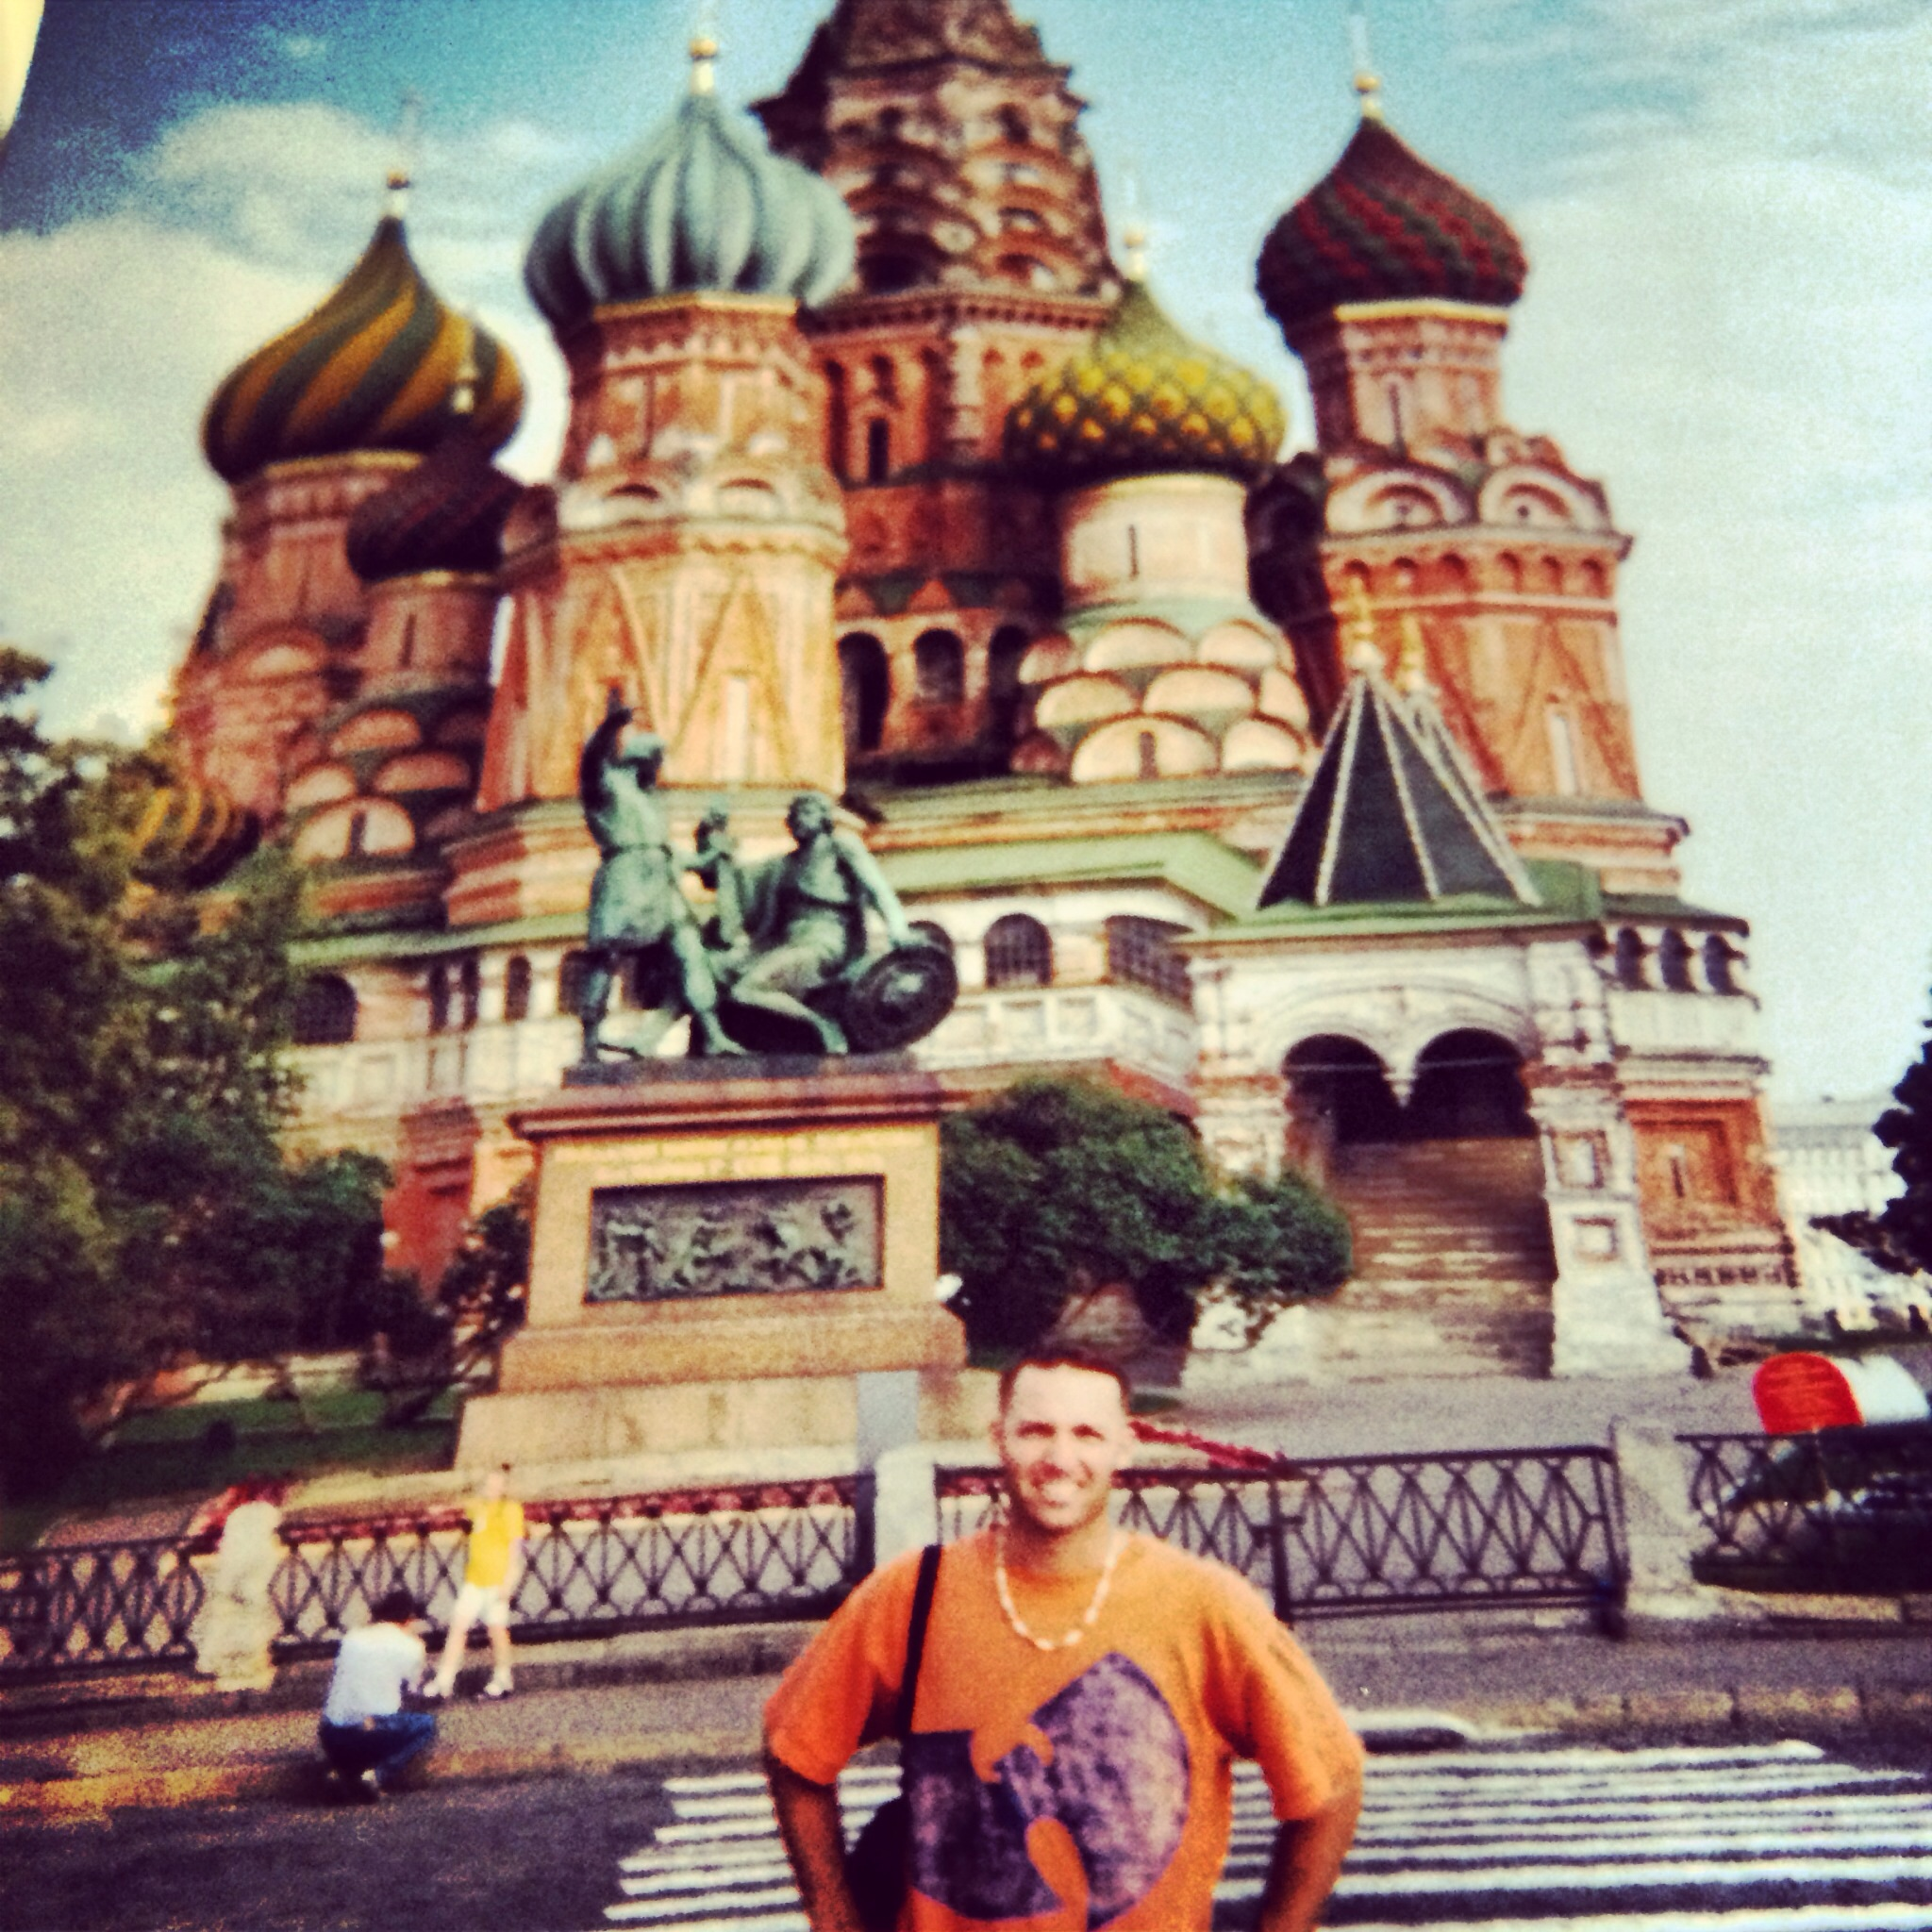 Circa 2001 in Moscow, Russia standing at St. Basil Cathedral